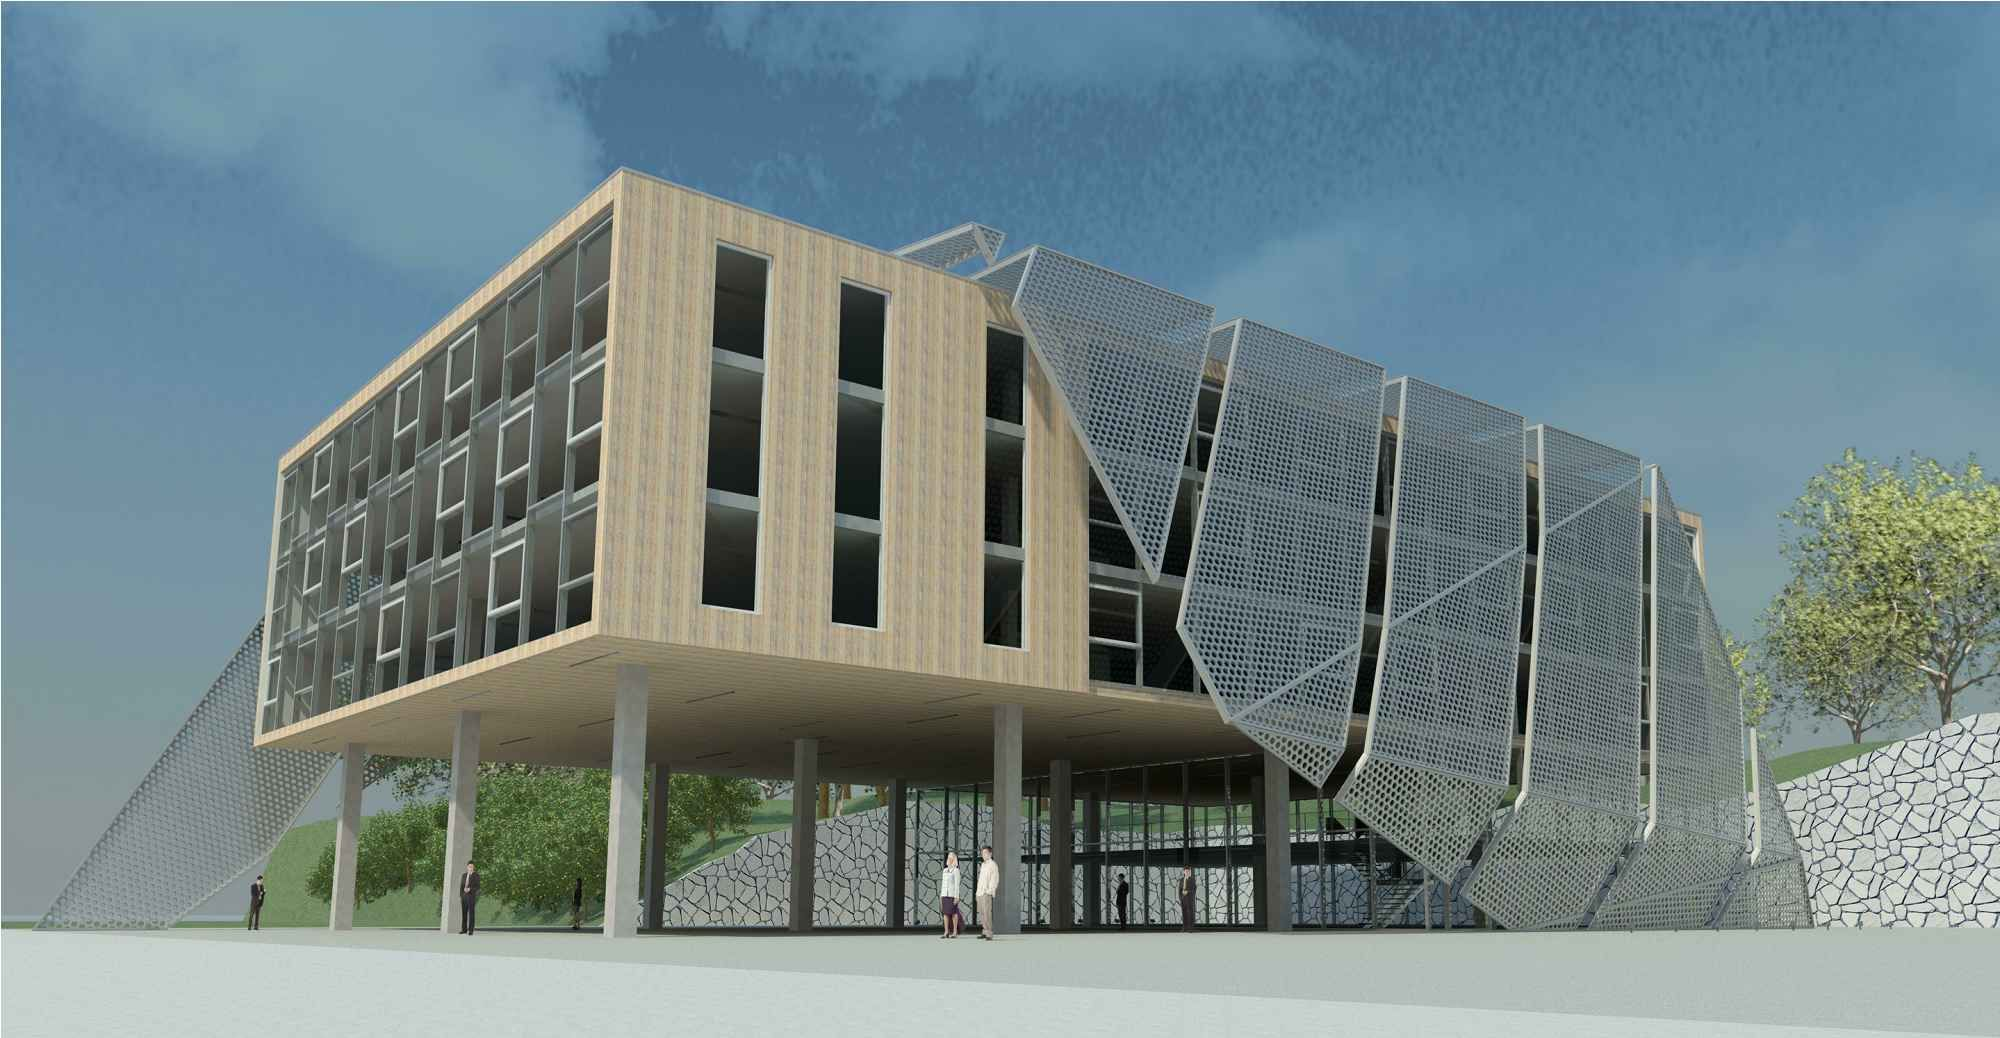 Starting on this project in revit i can and i will for Casa moderna revit